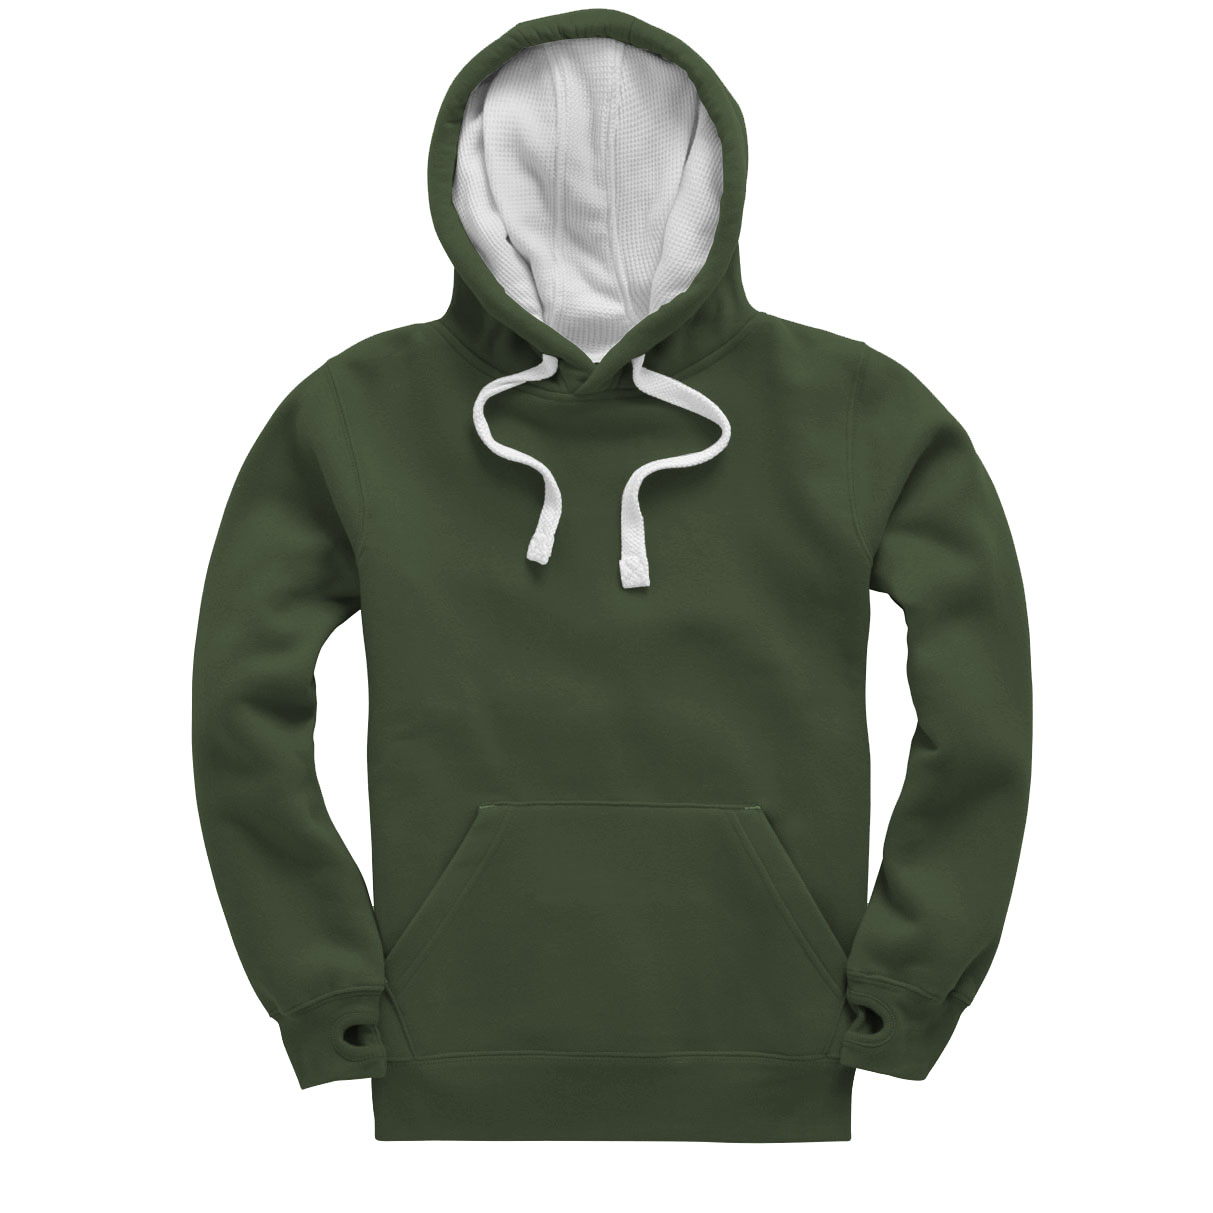 Unisex  Hoodie With iPod /& Phone Pocket Various Colours Black Grey Navy /& More